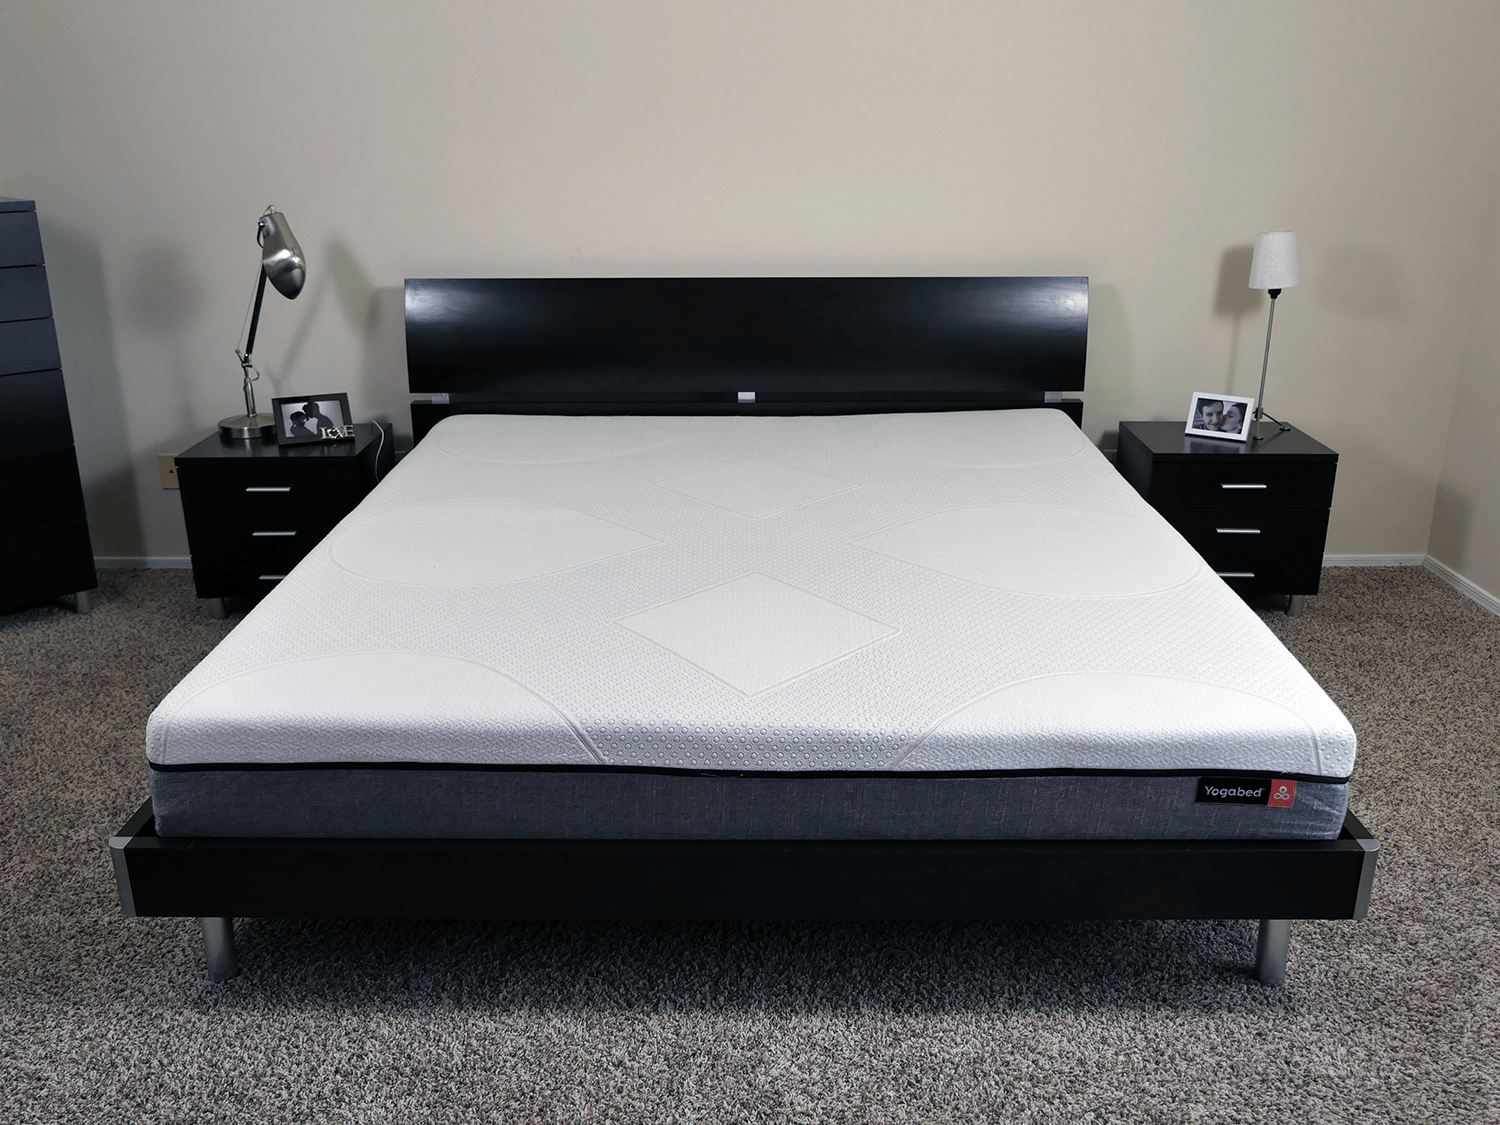 Yogabed mattress - King size, platform bed